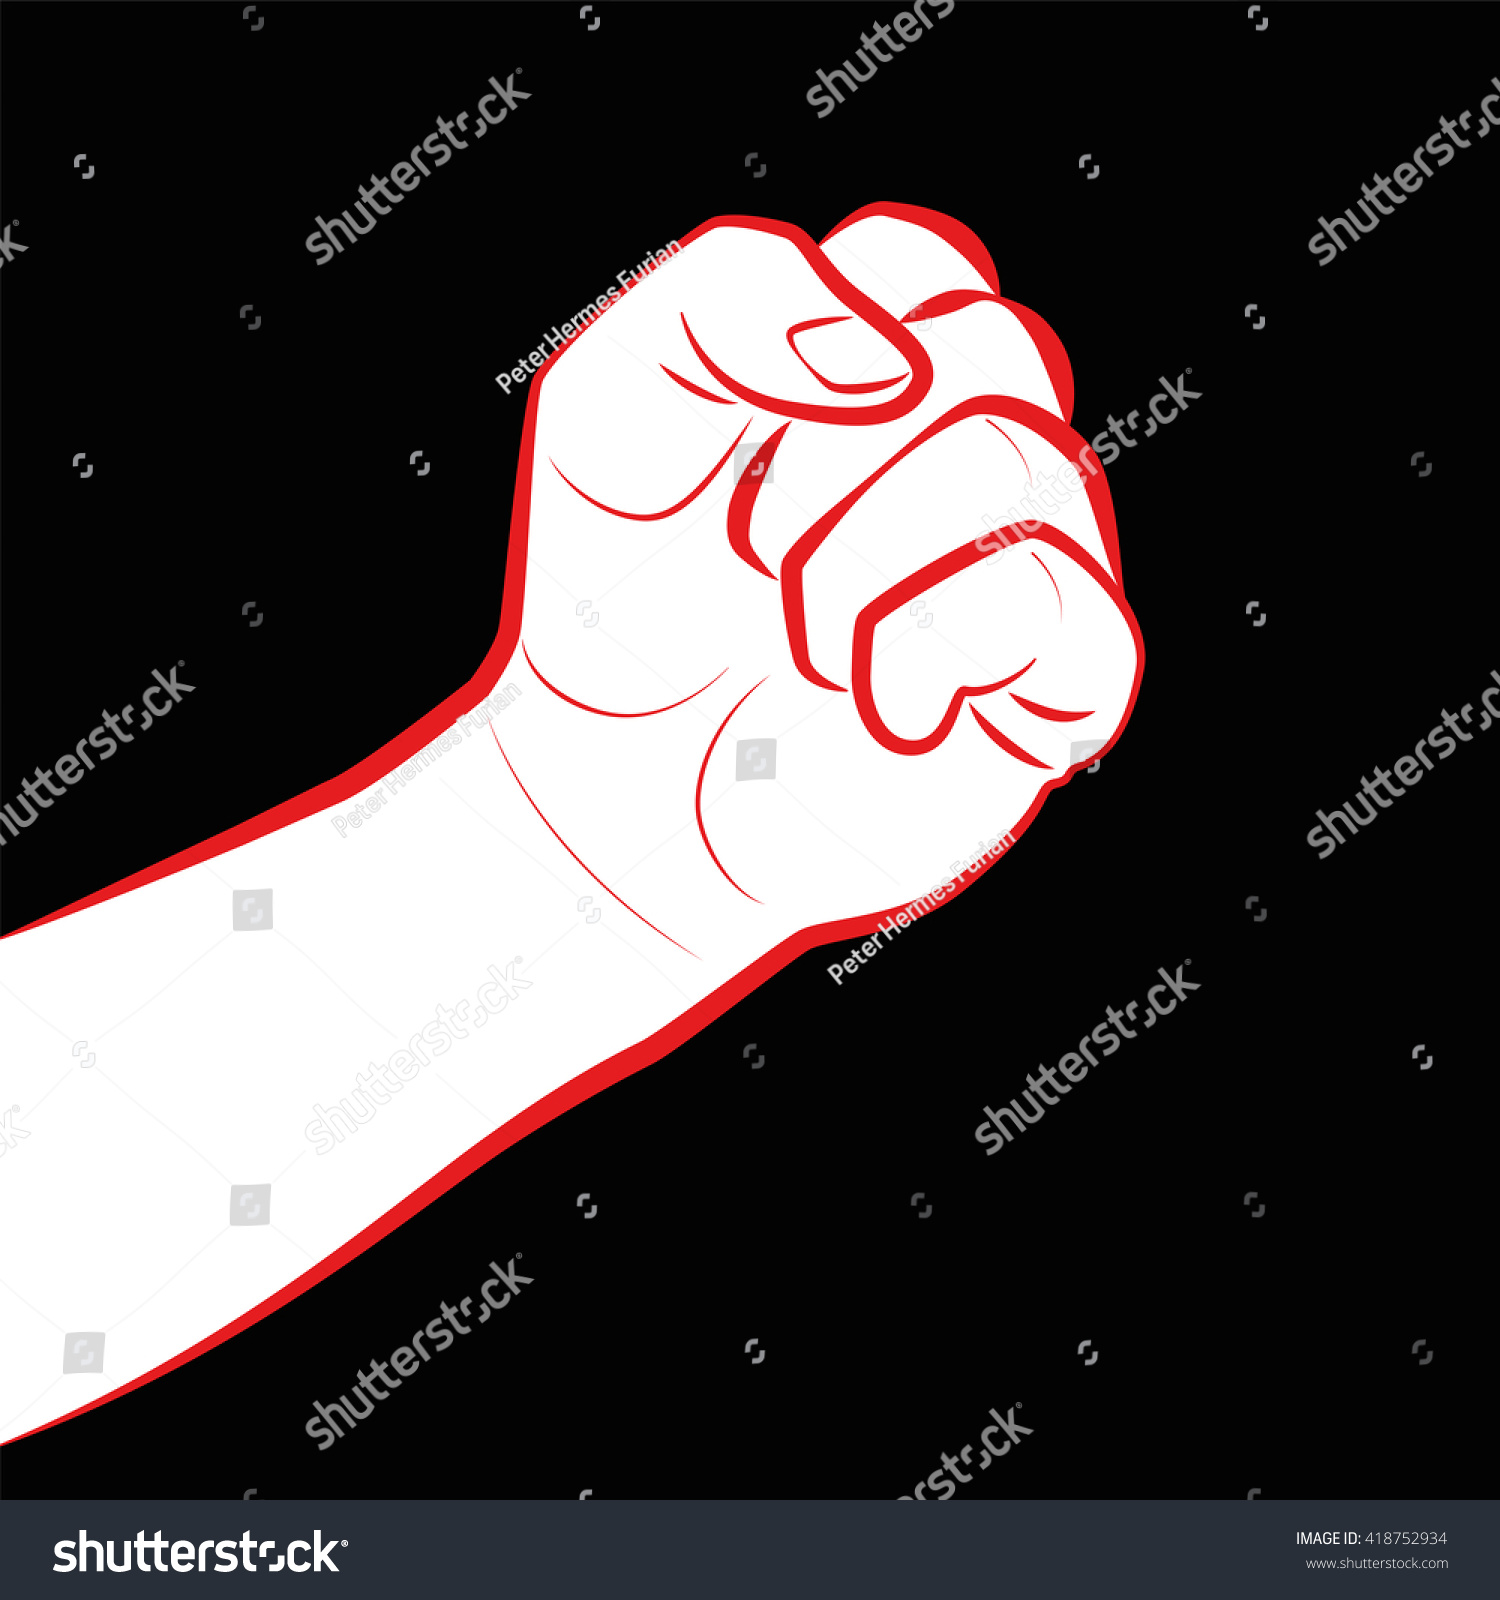 Fist Fight Icon Clenched Fist Symbol Stock Vector 2018 418752934